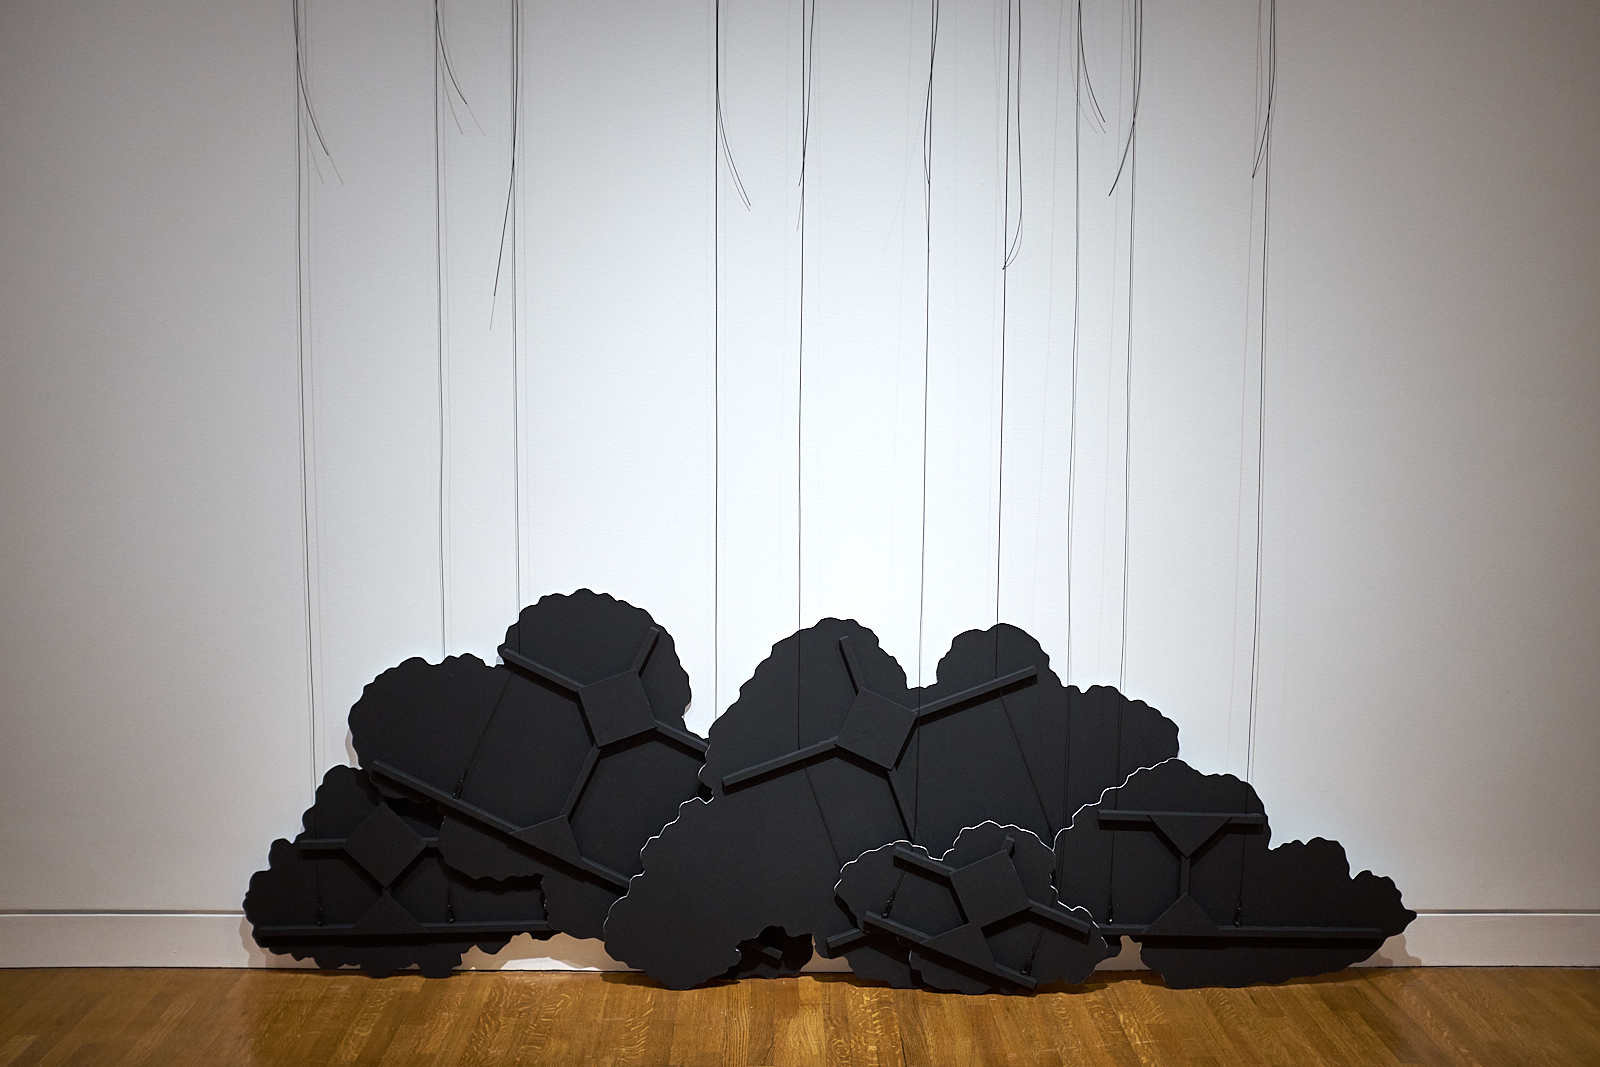 Latifa Echakhch,  Untitled (Black Cloud) IV